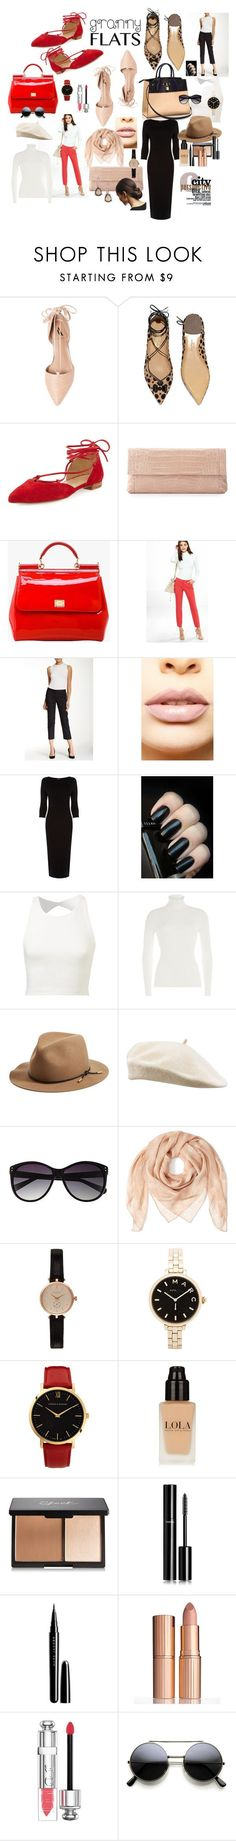 """Not Your Granny's Flats"" by lulu13nyc ❤ liked on Polyvore featuring Ava & Aiden, Salvatore Ferragamo, Stuart Weitzman, Louis Vuitton, Nancy Gonzalez, Dolce&Gabbana, Express, Susina, LASplash and Warehouse"